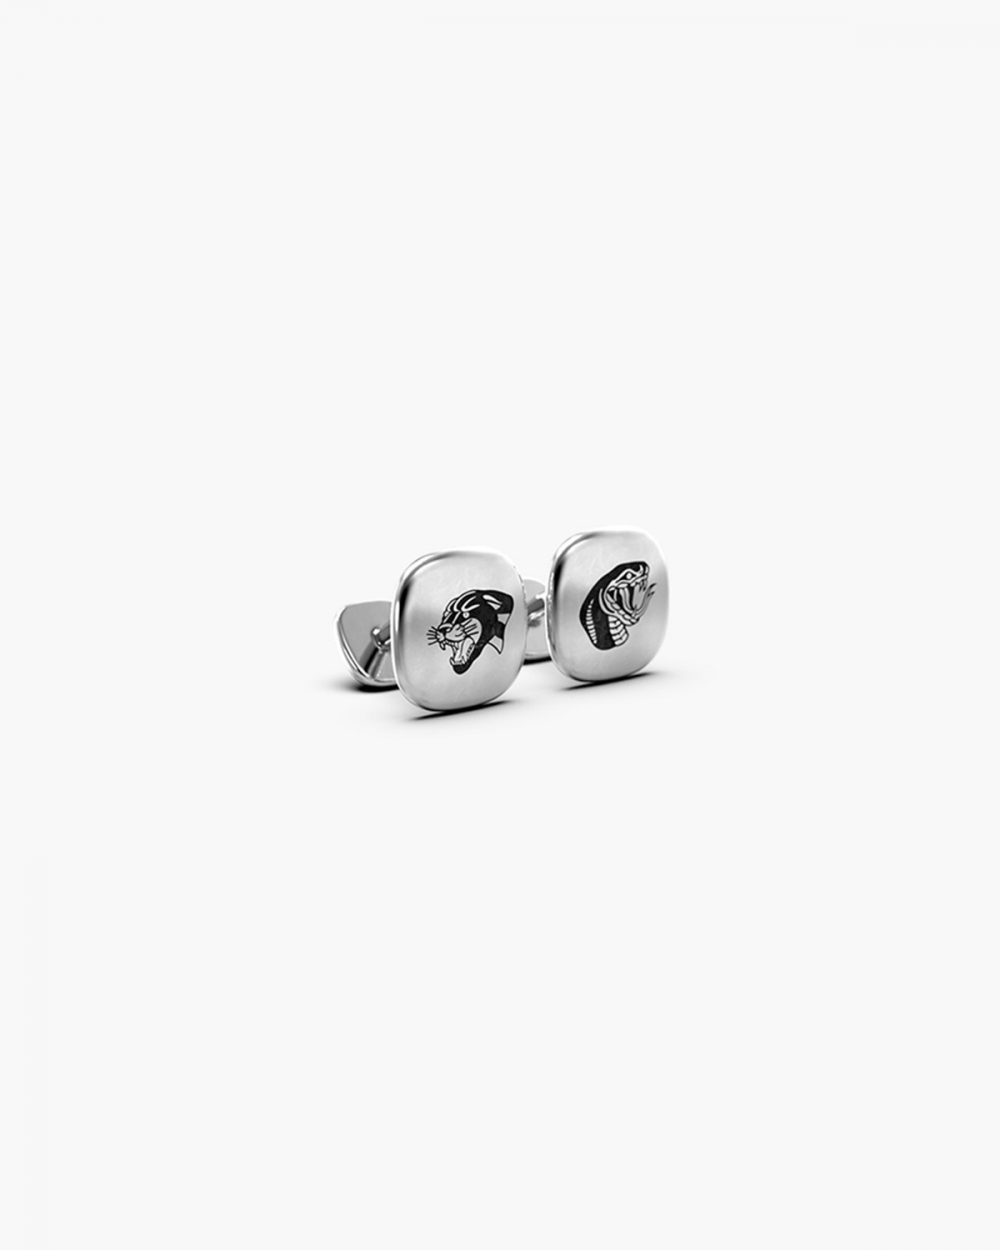 MYNOVE25 BASIC CUFFLINKS NOVE25